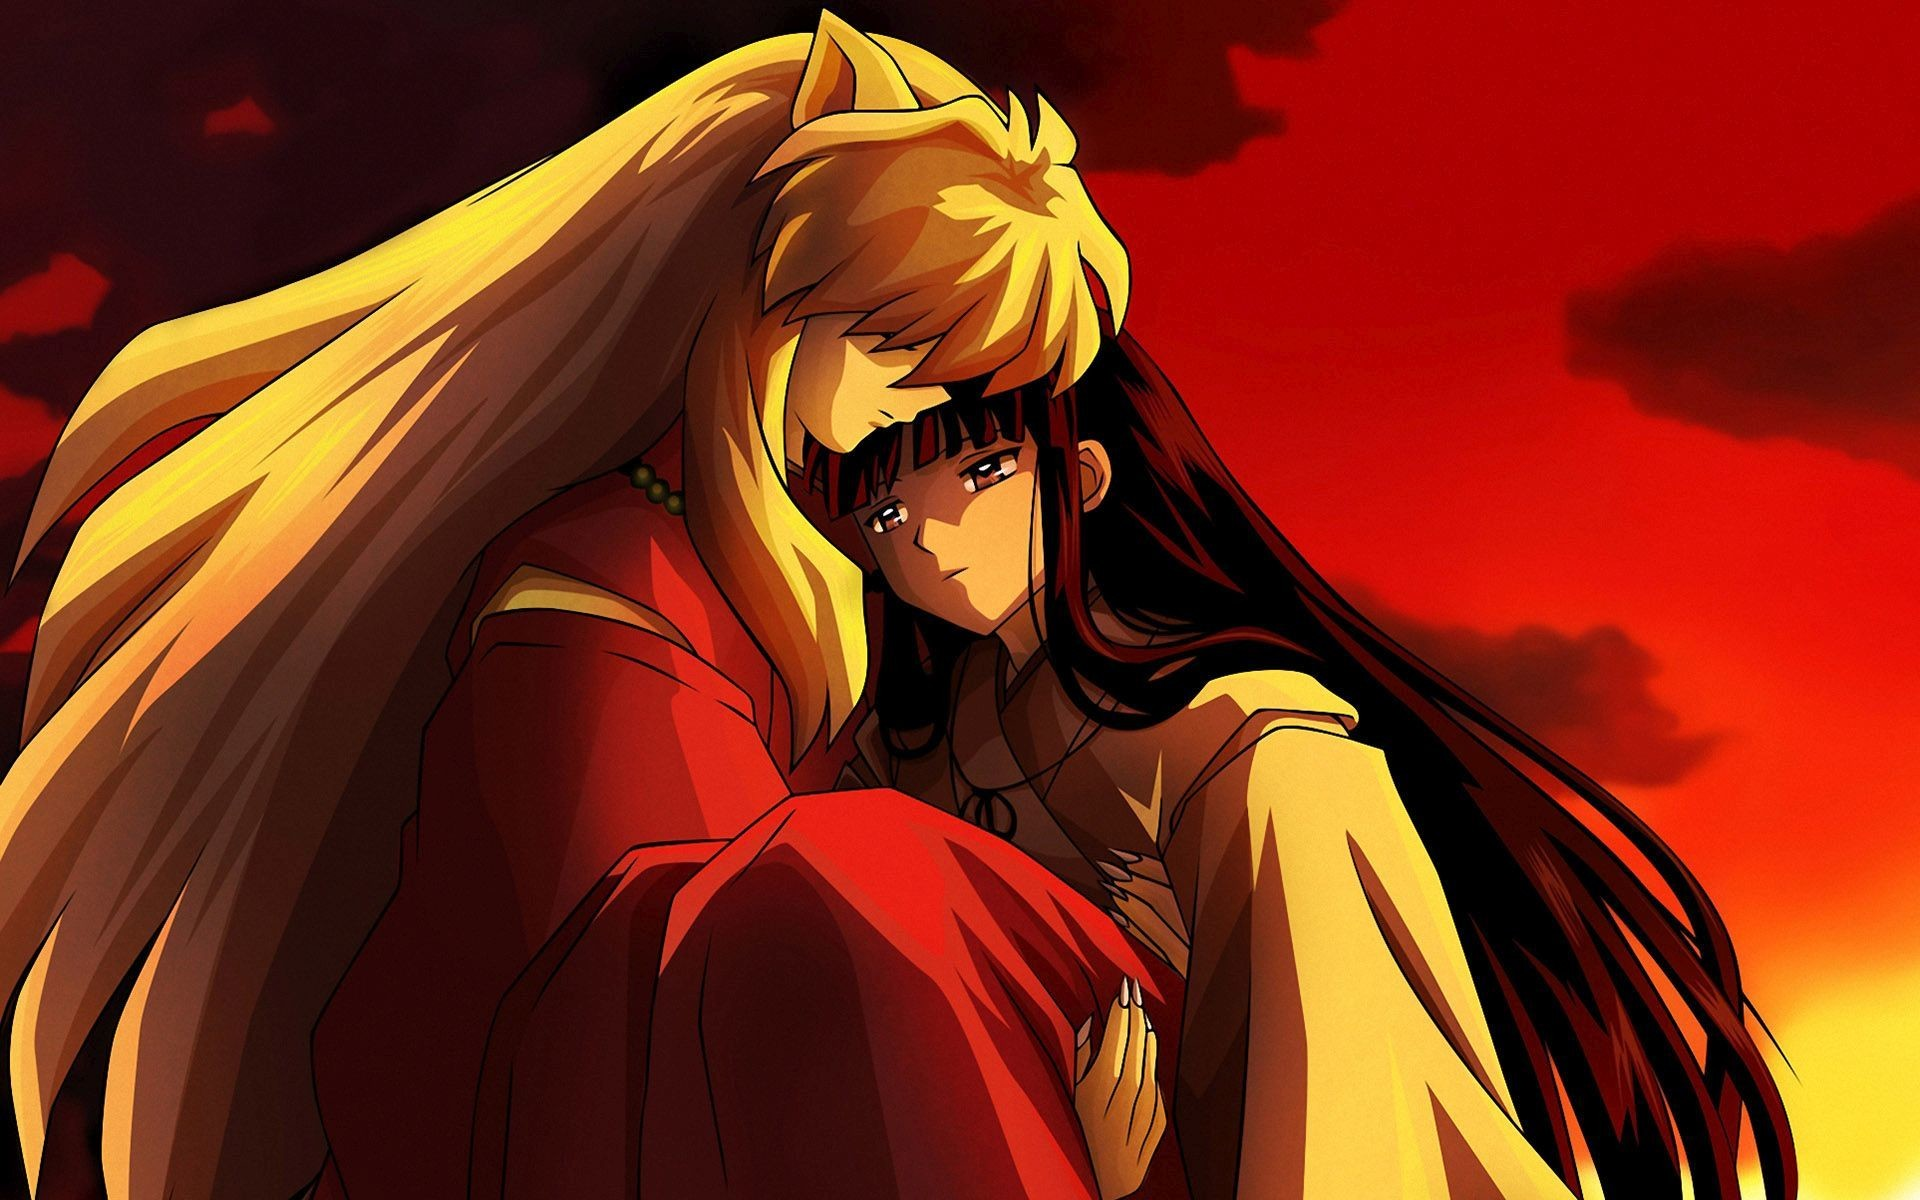 1920x1200 Kikyo and Sesshomaru Inuyasha Wallpaper 26073